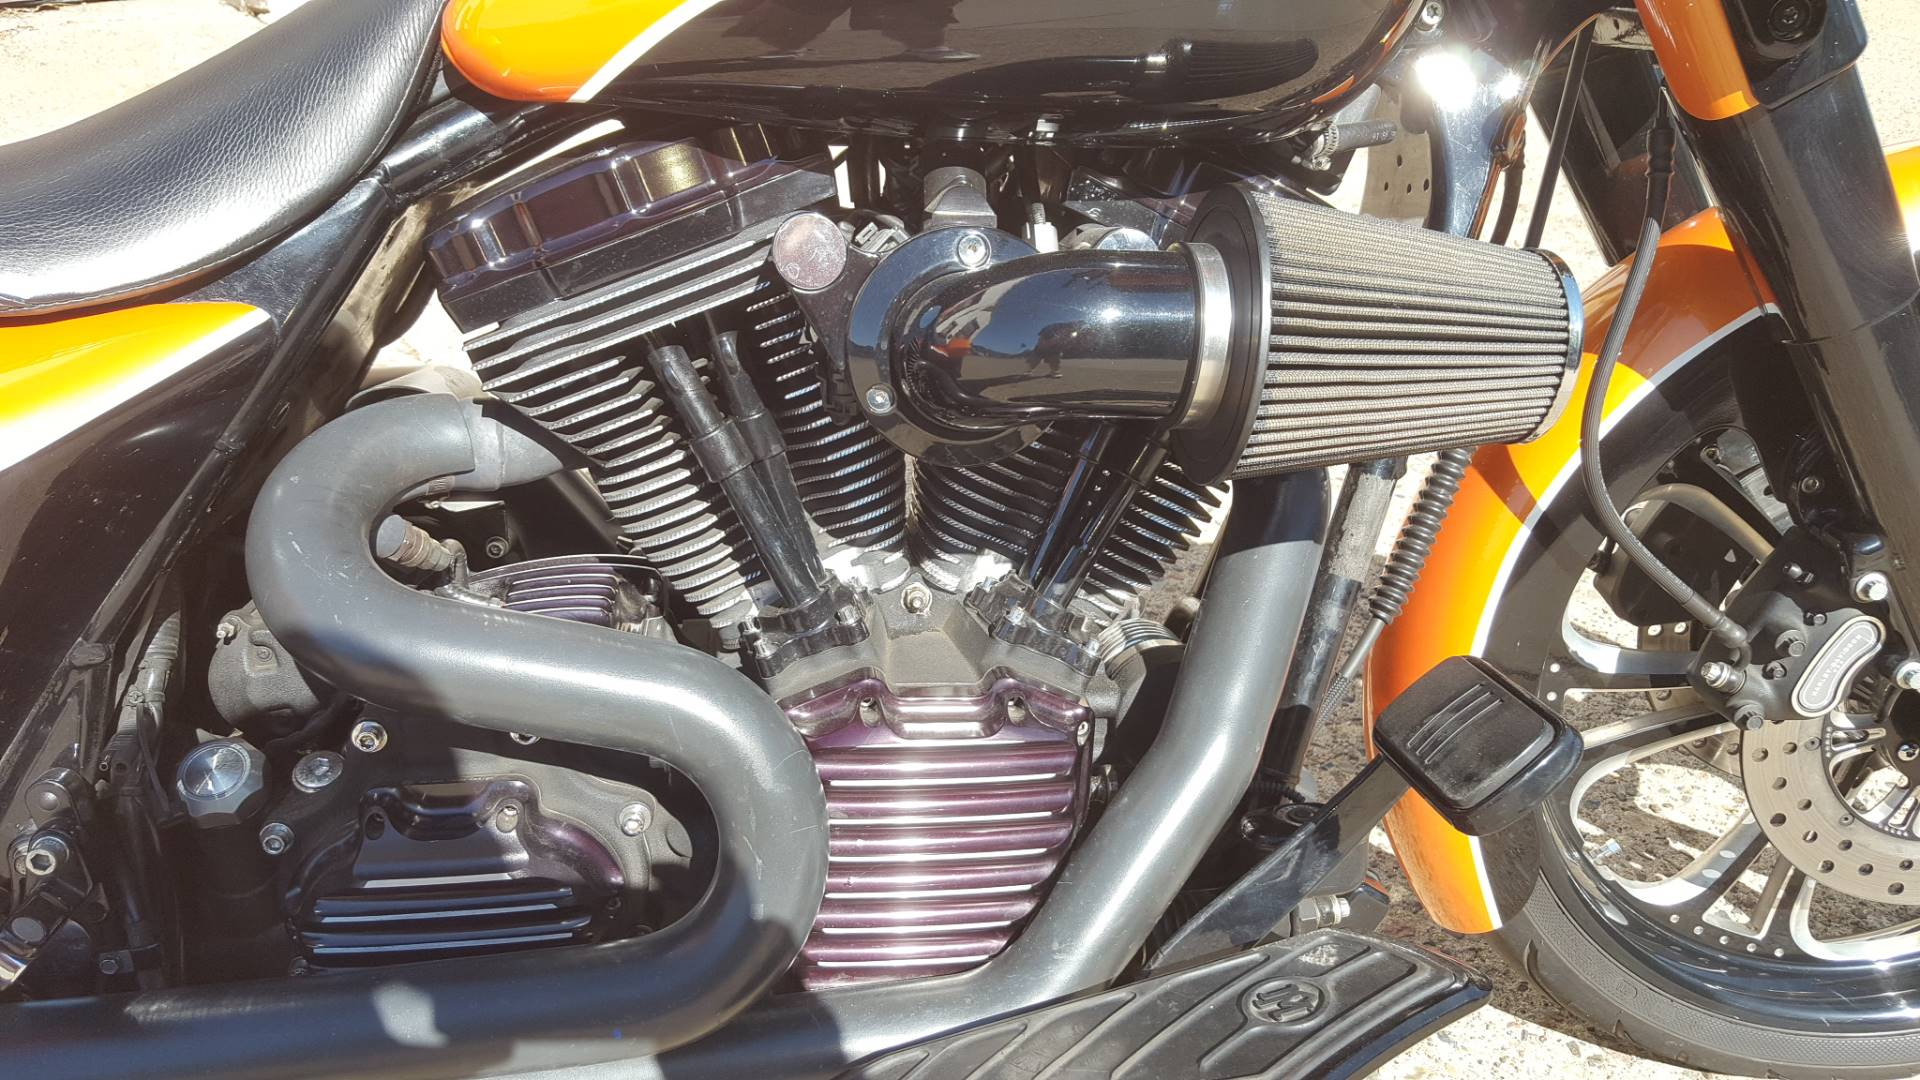 2007 Harley-Davidson Street Glide™ in South Saint Paul, Minnesota